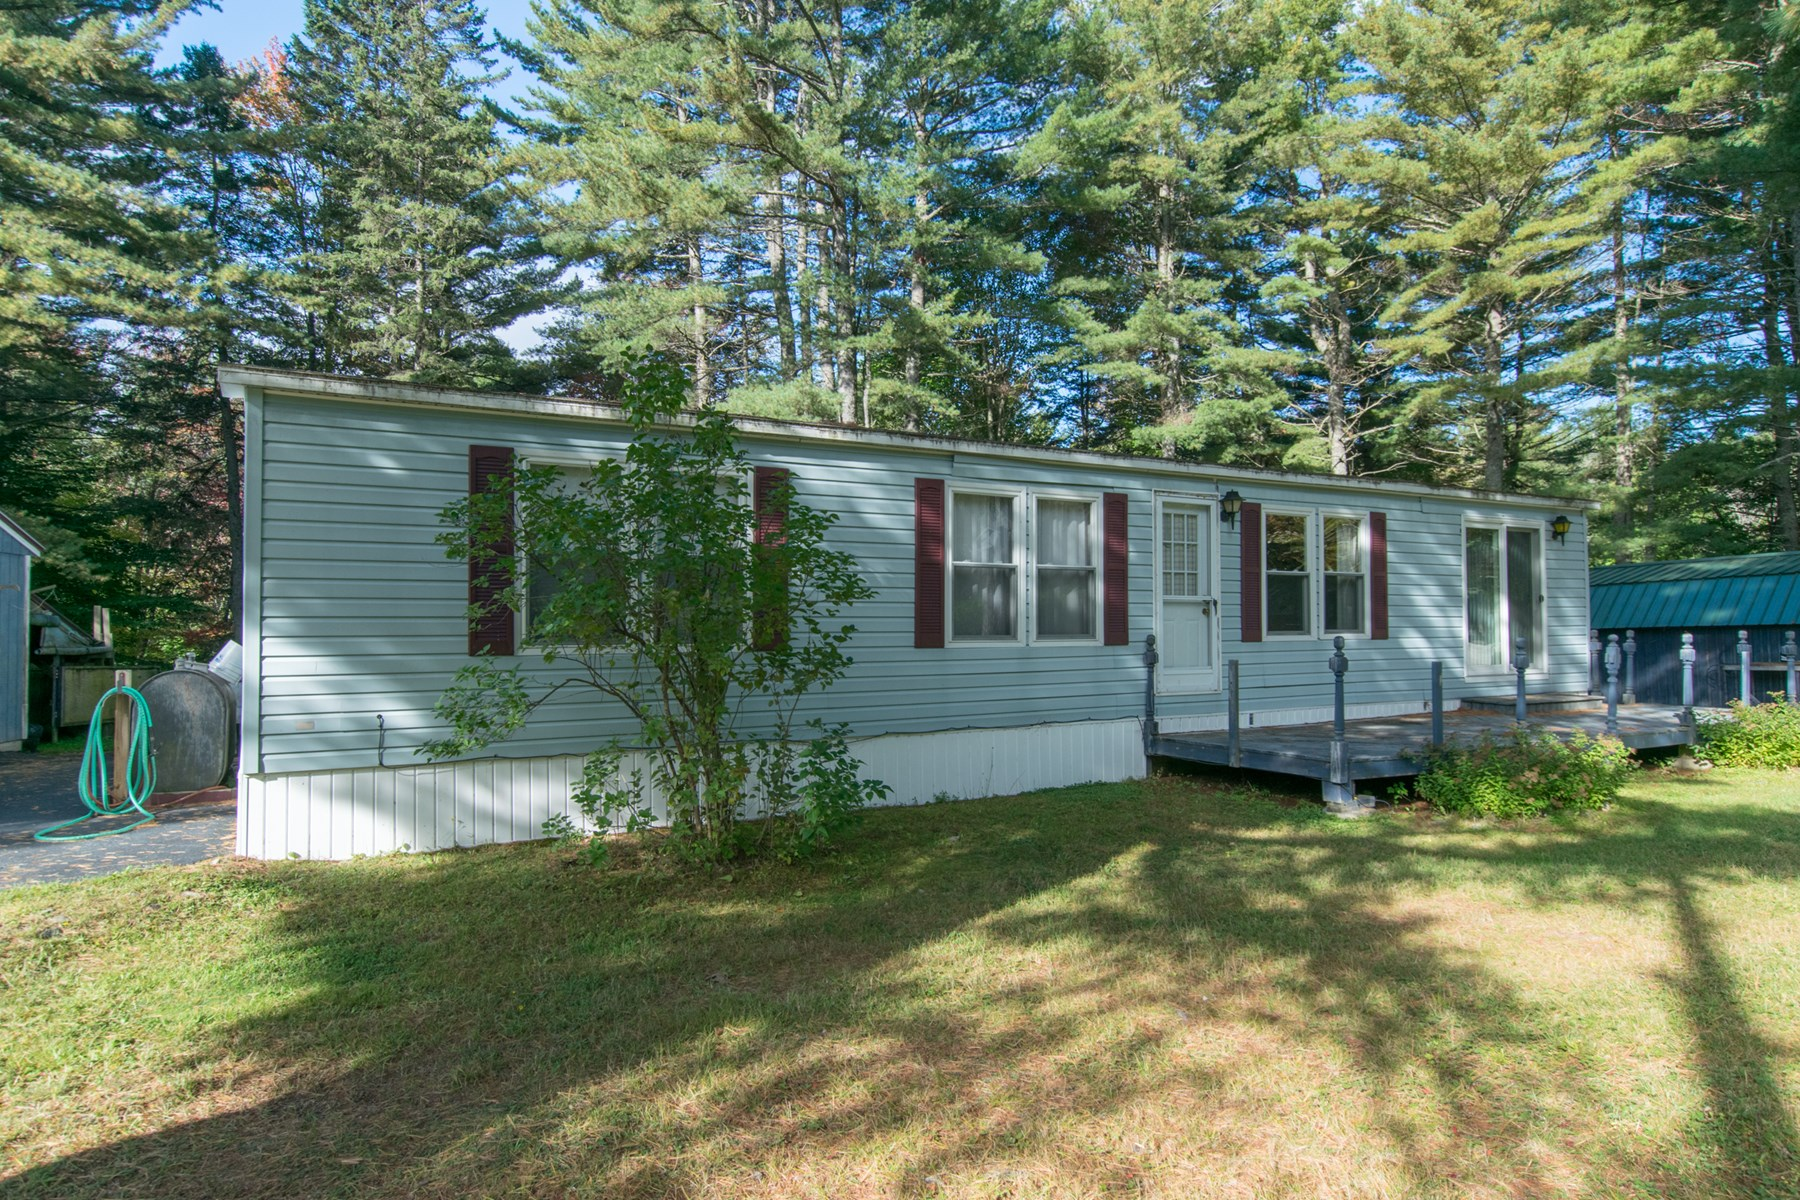 Double Wide Home For Sale in Medway, Maine